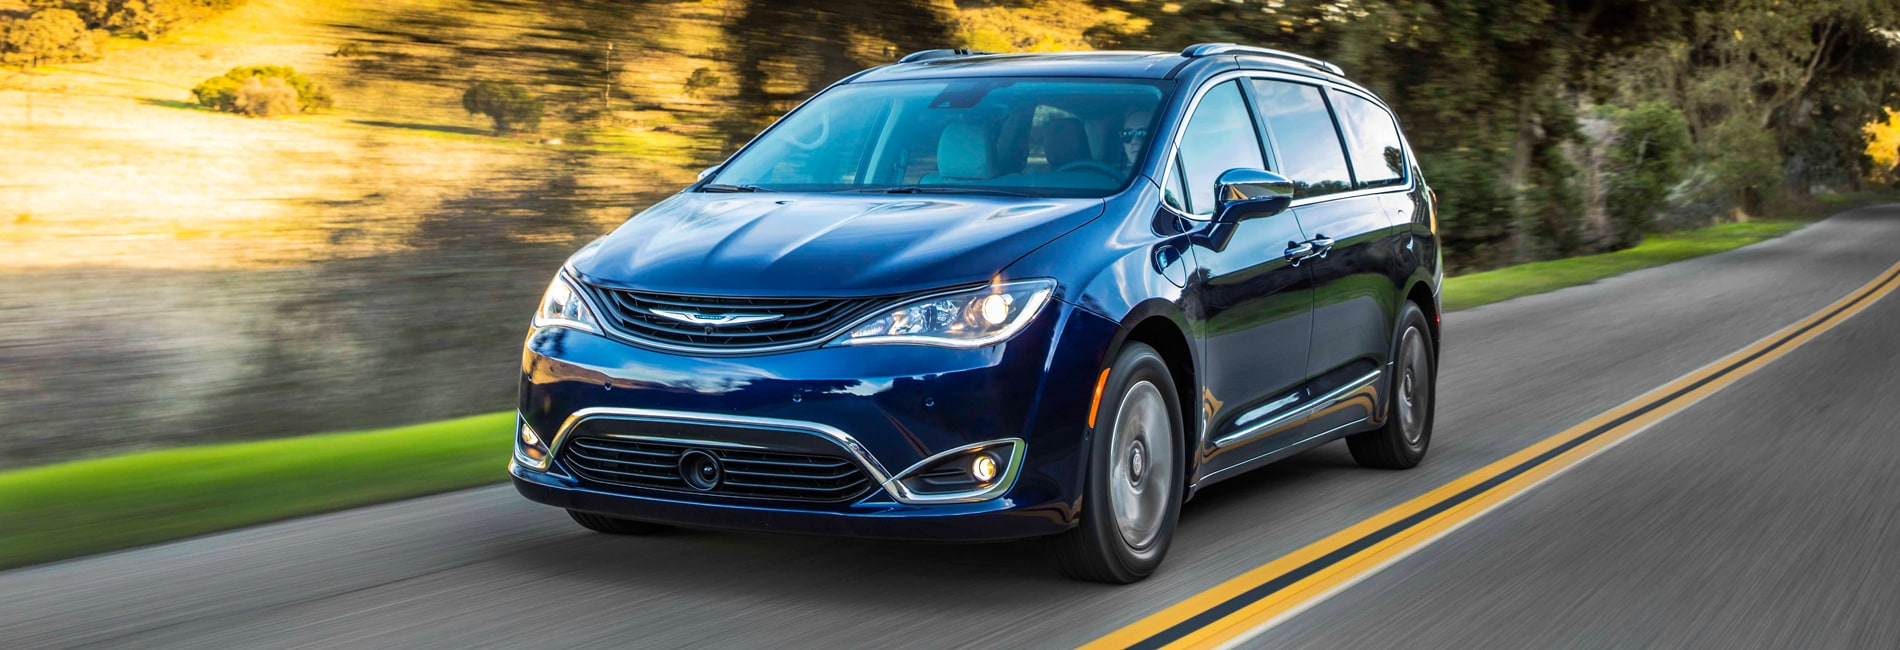 Chrysler Pacifica Exterior Vehicle Features